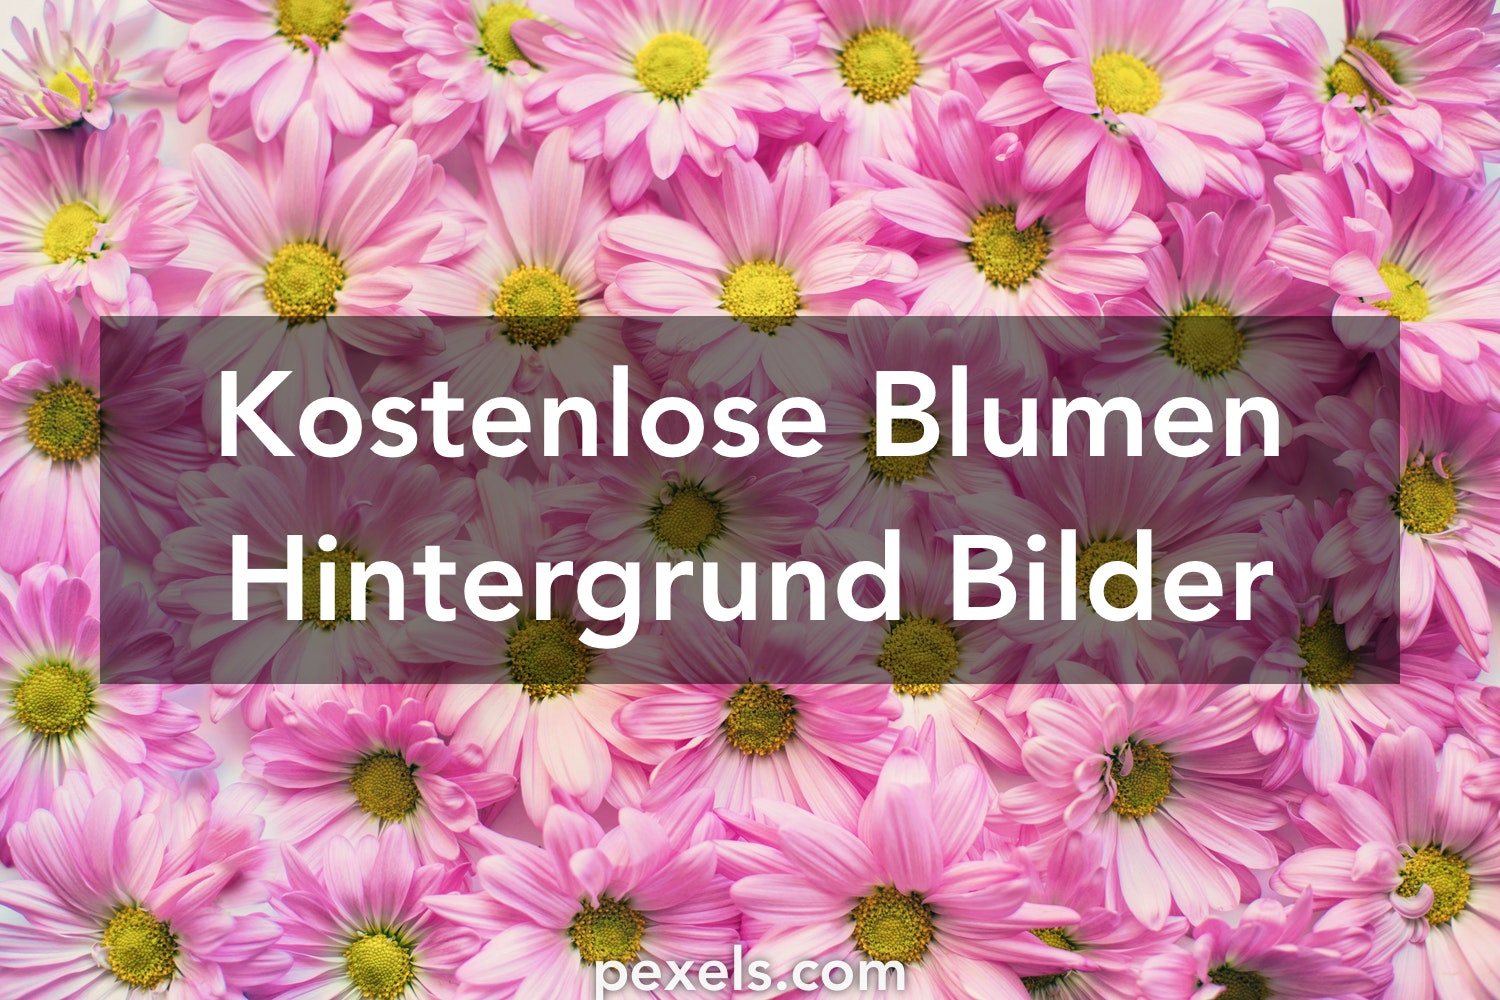 1000 blumen hintergrund fotos pexels kostenlose stock fotos. Black Bedroom Furniture Sets. Home Design Ideas